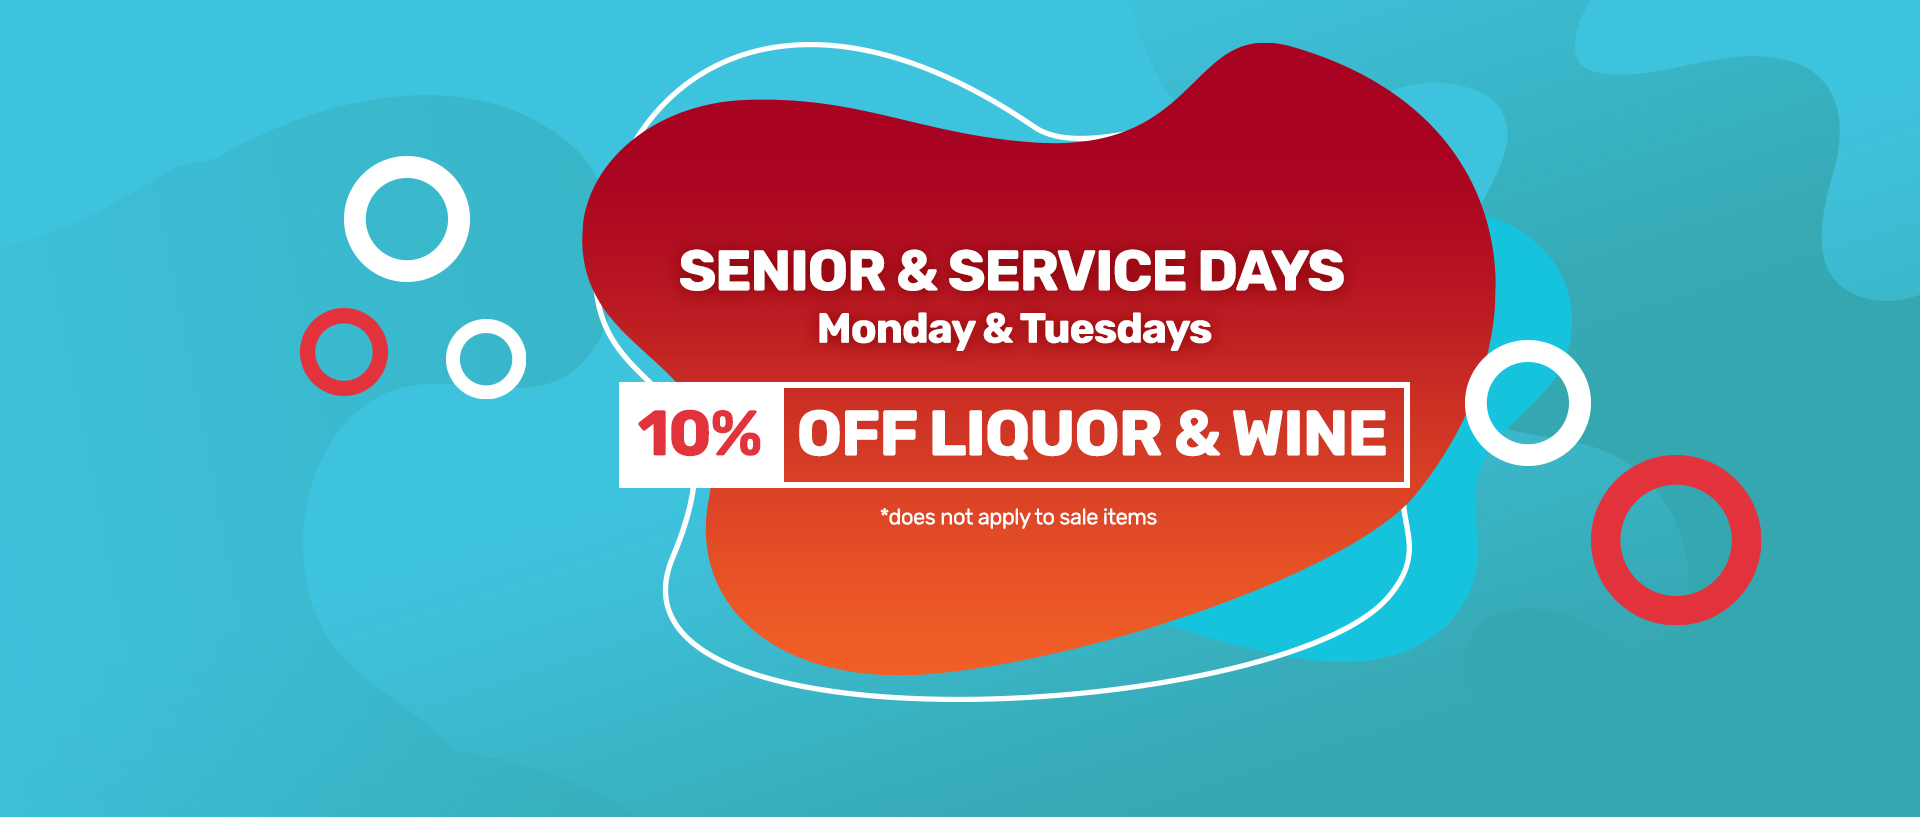 Senior & Service Days on Mondays and Tuesdays at Lundeen Discount Liquors - 10% off liquor and wine